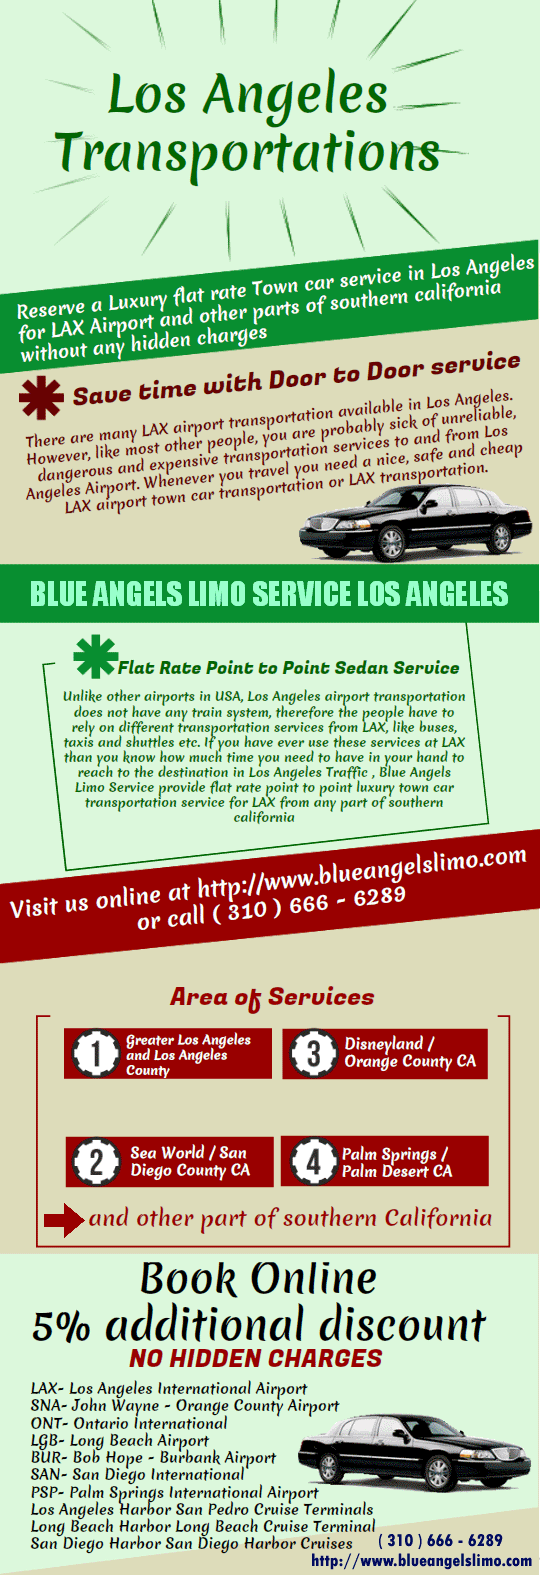 LaX Transportation Los Angeles